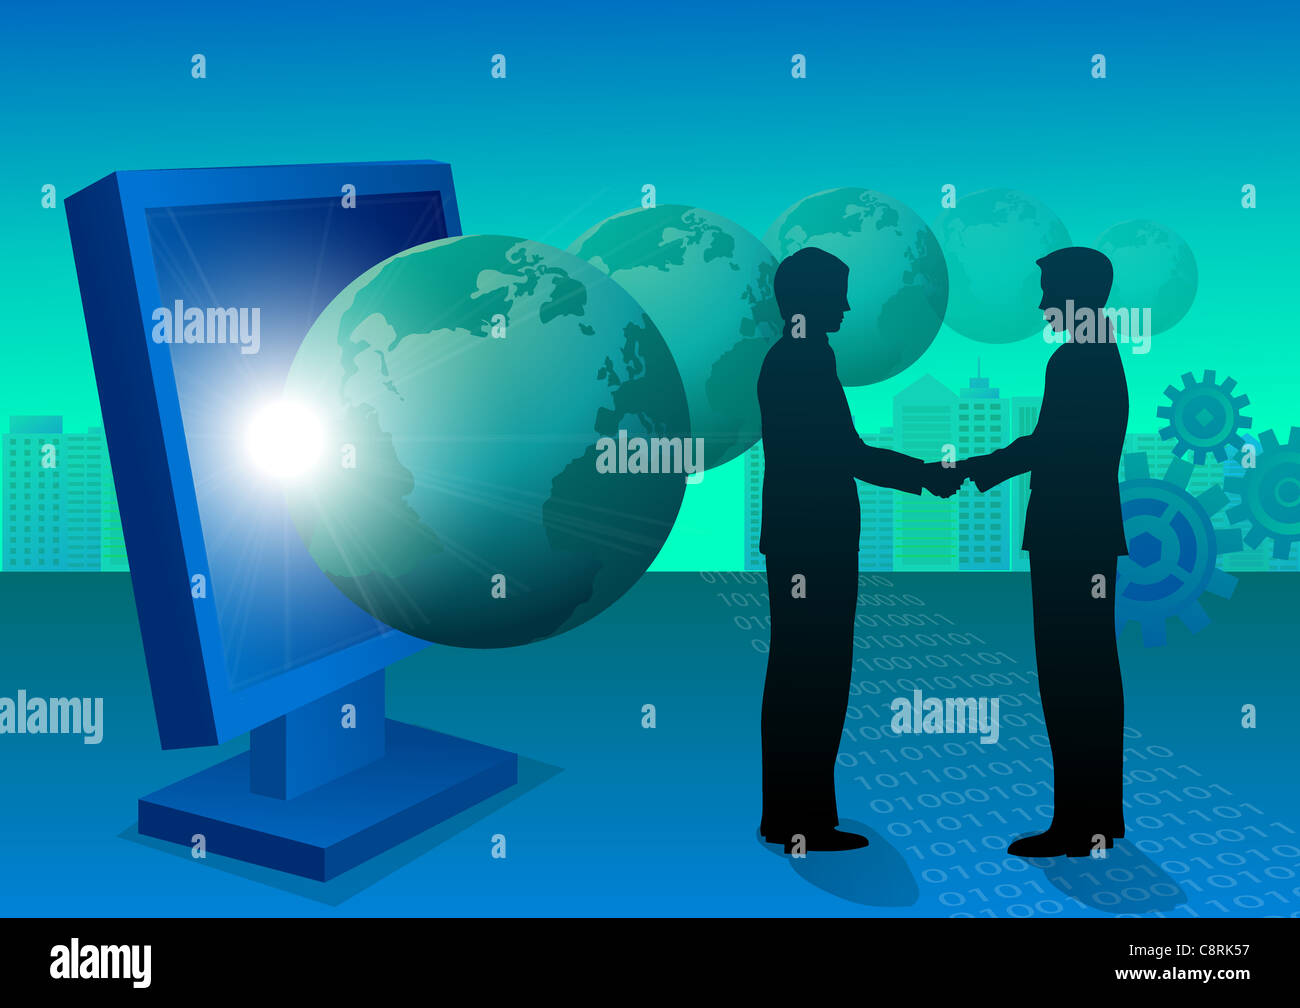 Illustration of two men shaking hands - Stock Image